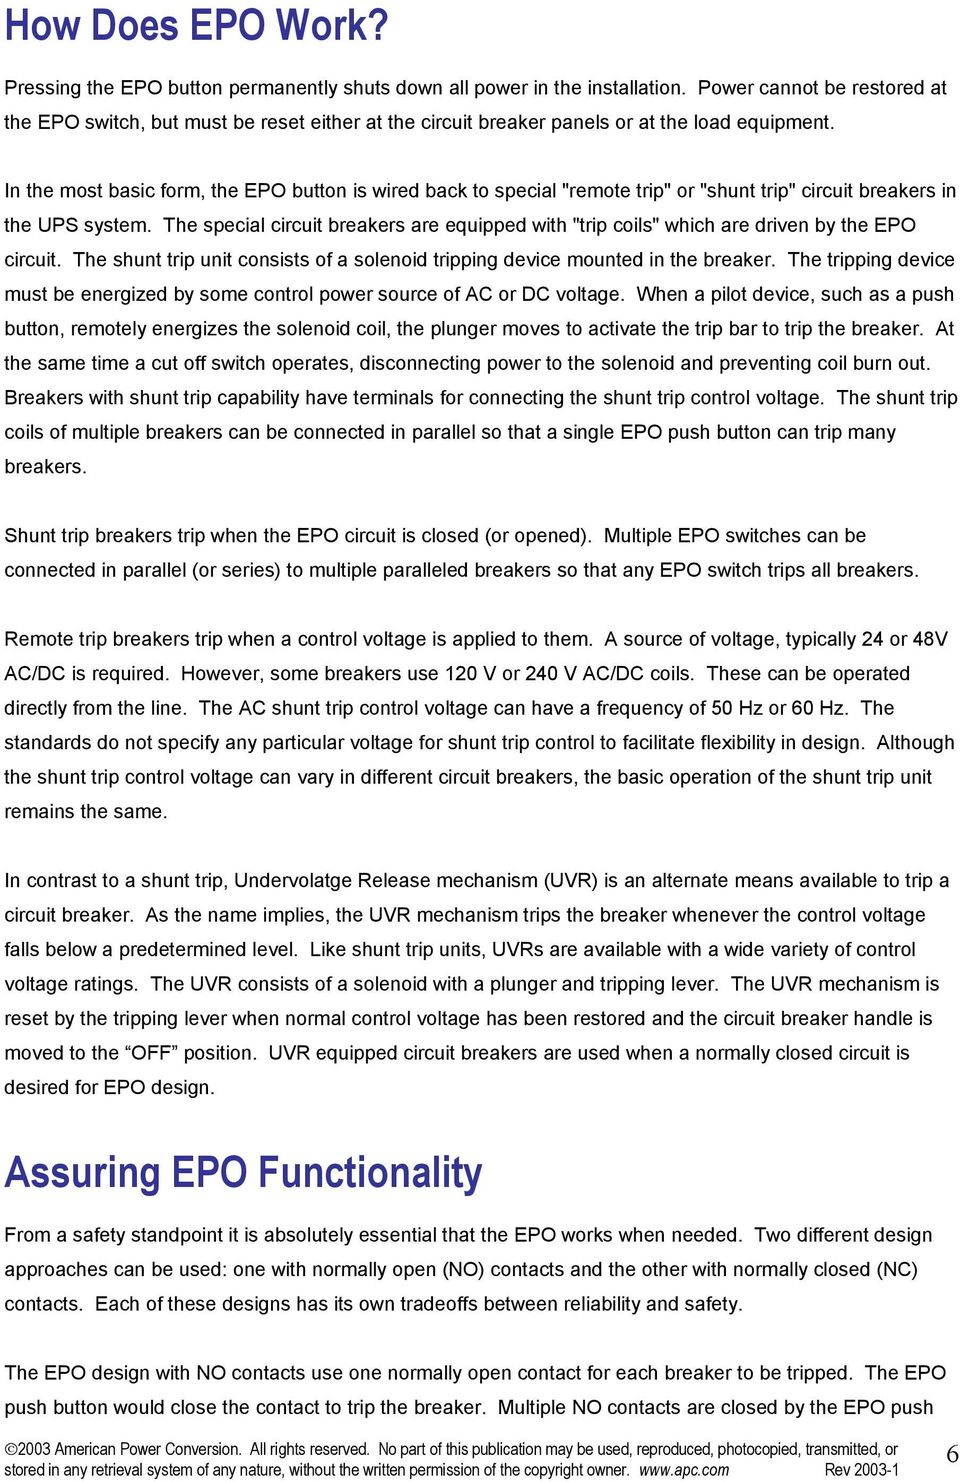 Understanding Emergency Power Off Epo Pdf Trip Breaker Wiring Diagram Moreover Shunt Circuit In The Most Basic Form Button Is Wired Back To Special Remote 7 Multiple Breakers